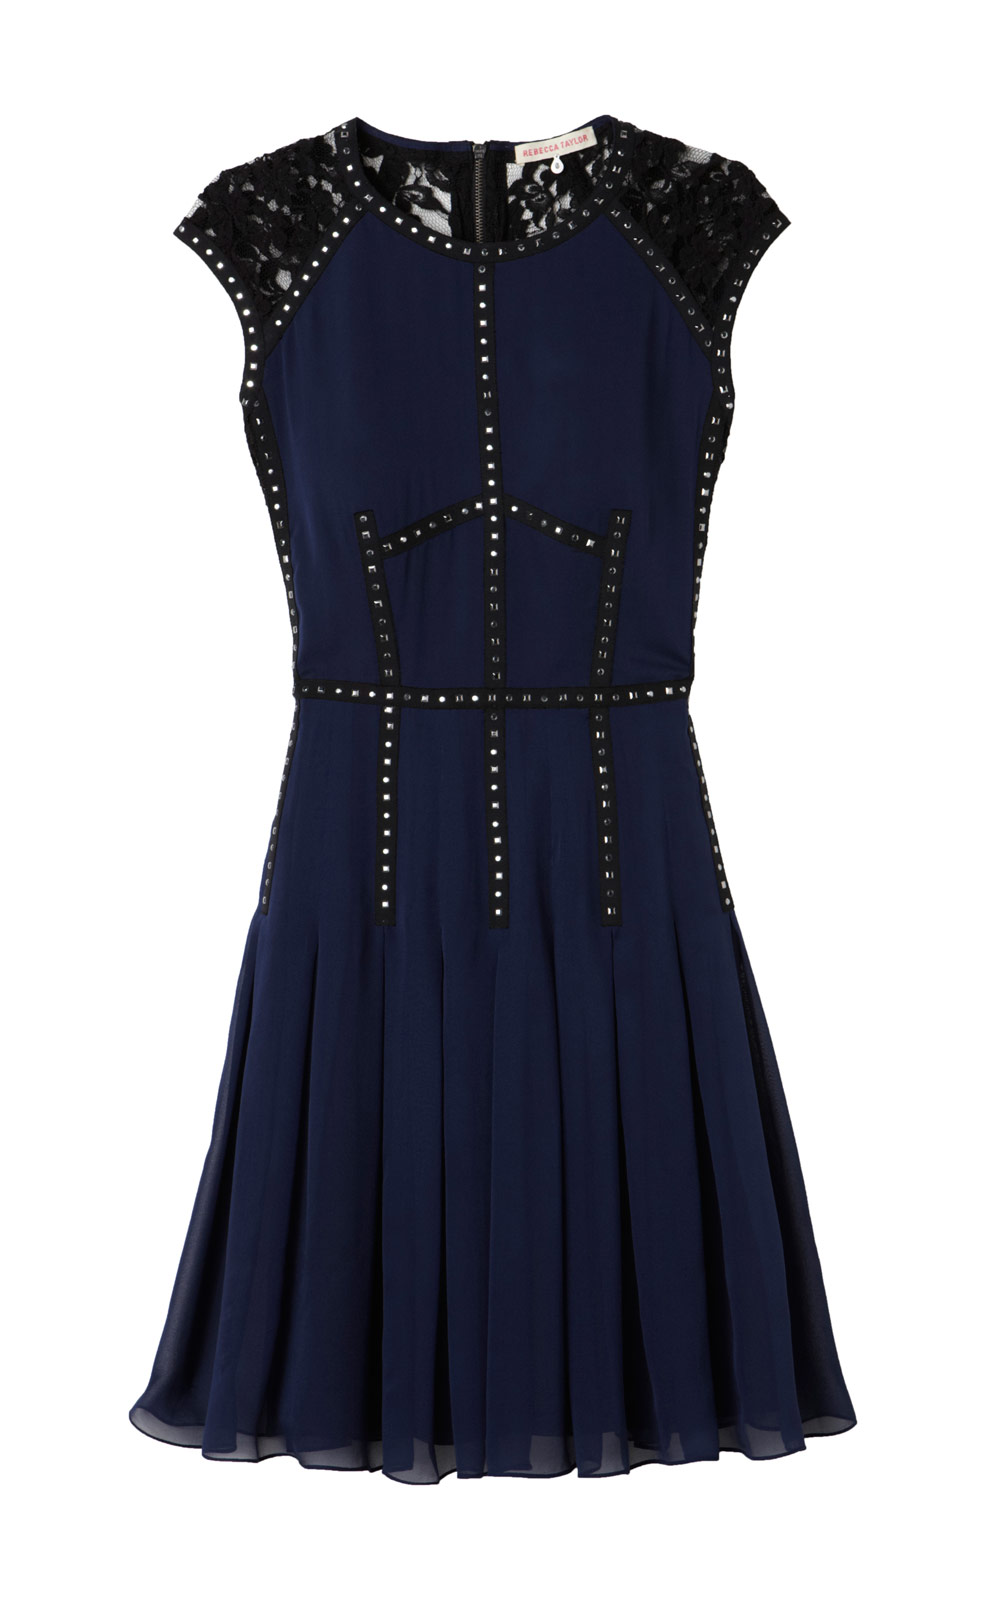 Rebecca Taylor Toughens Up The Dainty Cocktail Dress 495 With Stud